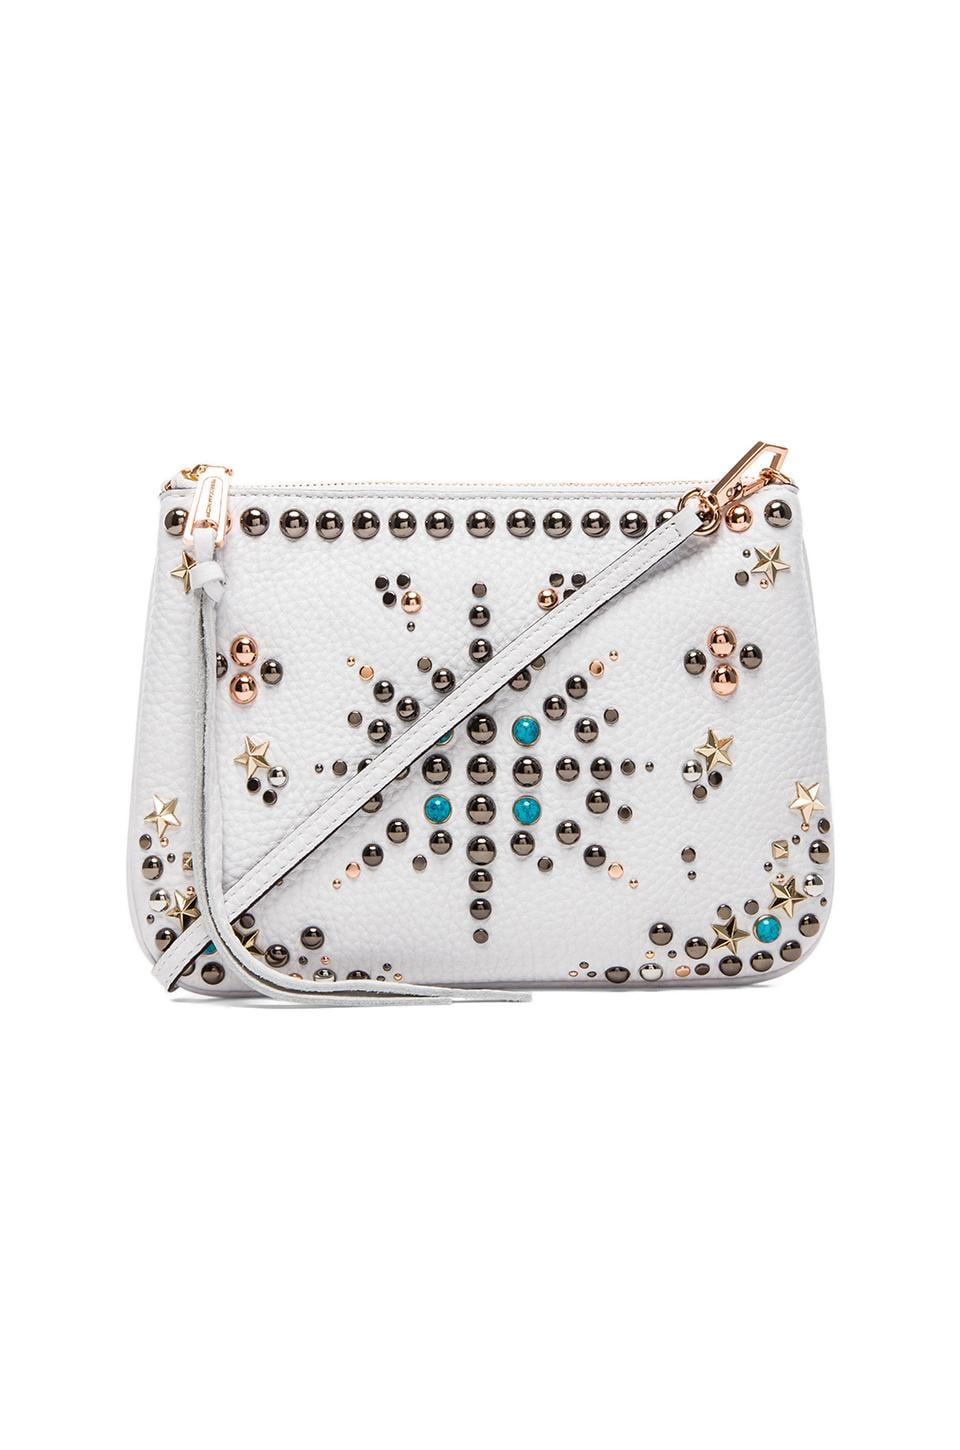 Rebecca Minkoff Ascher Crossbody in White